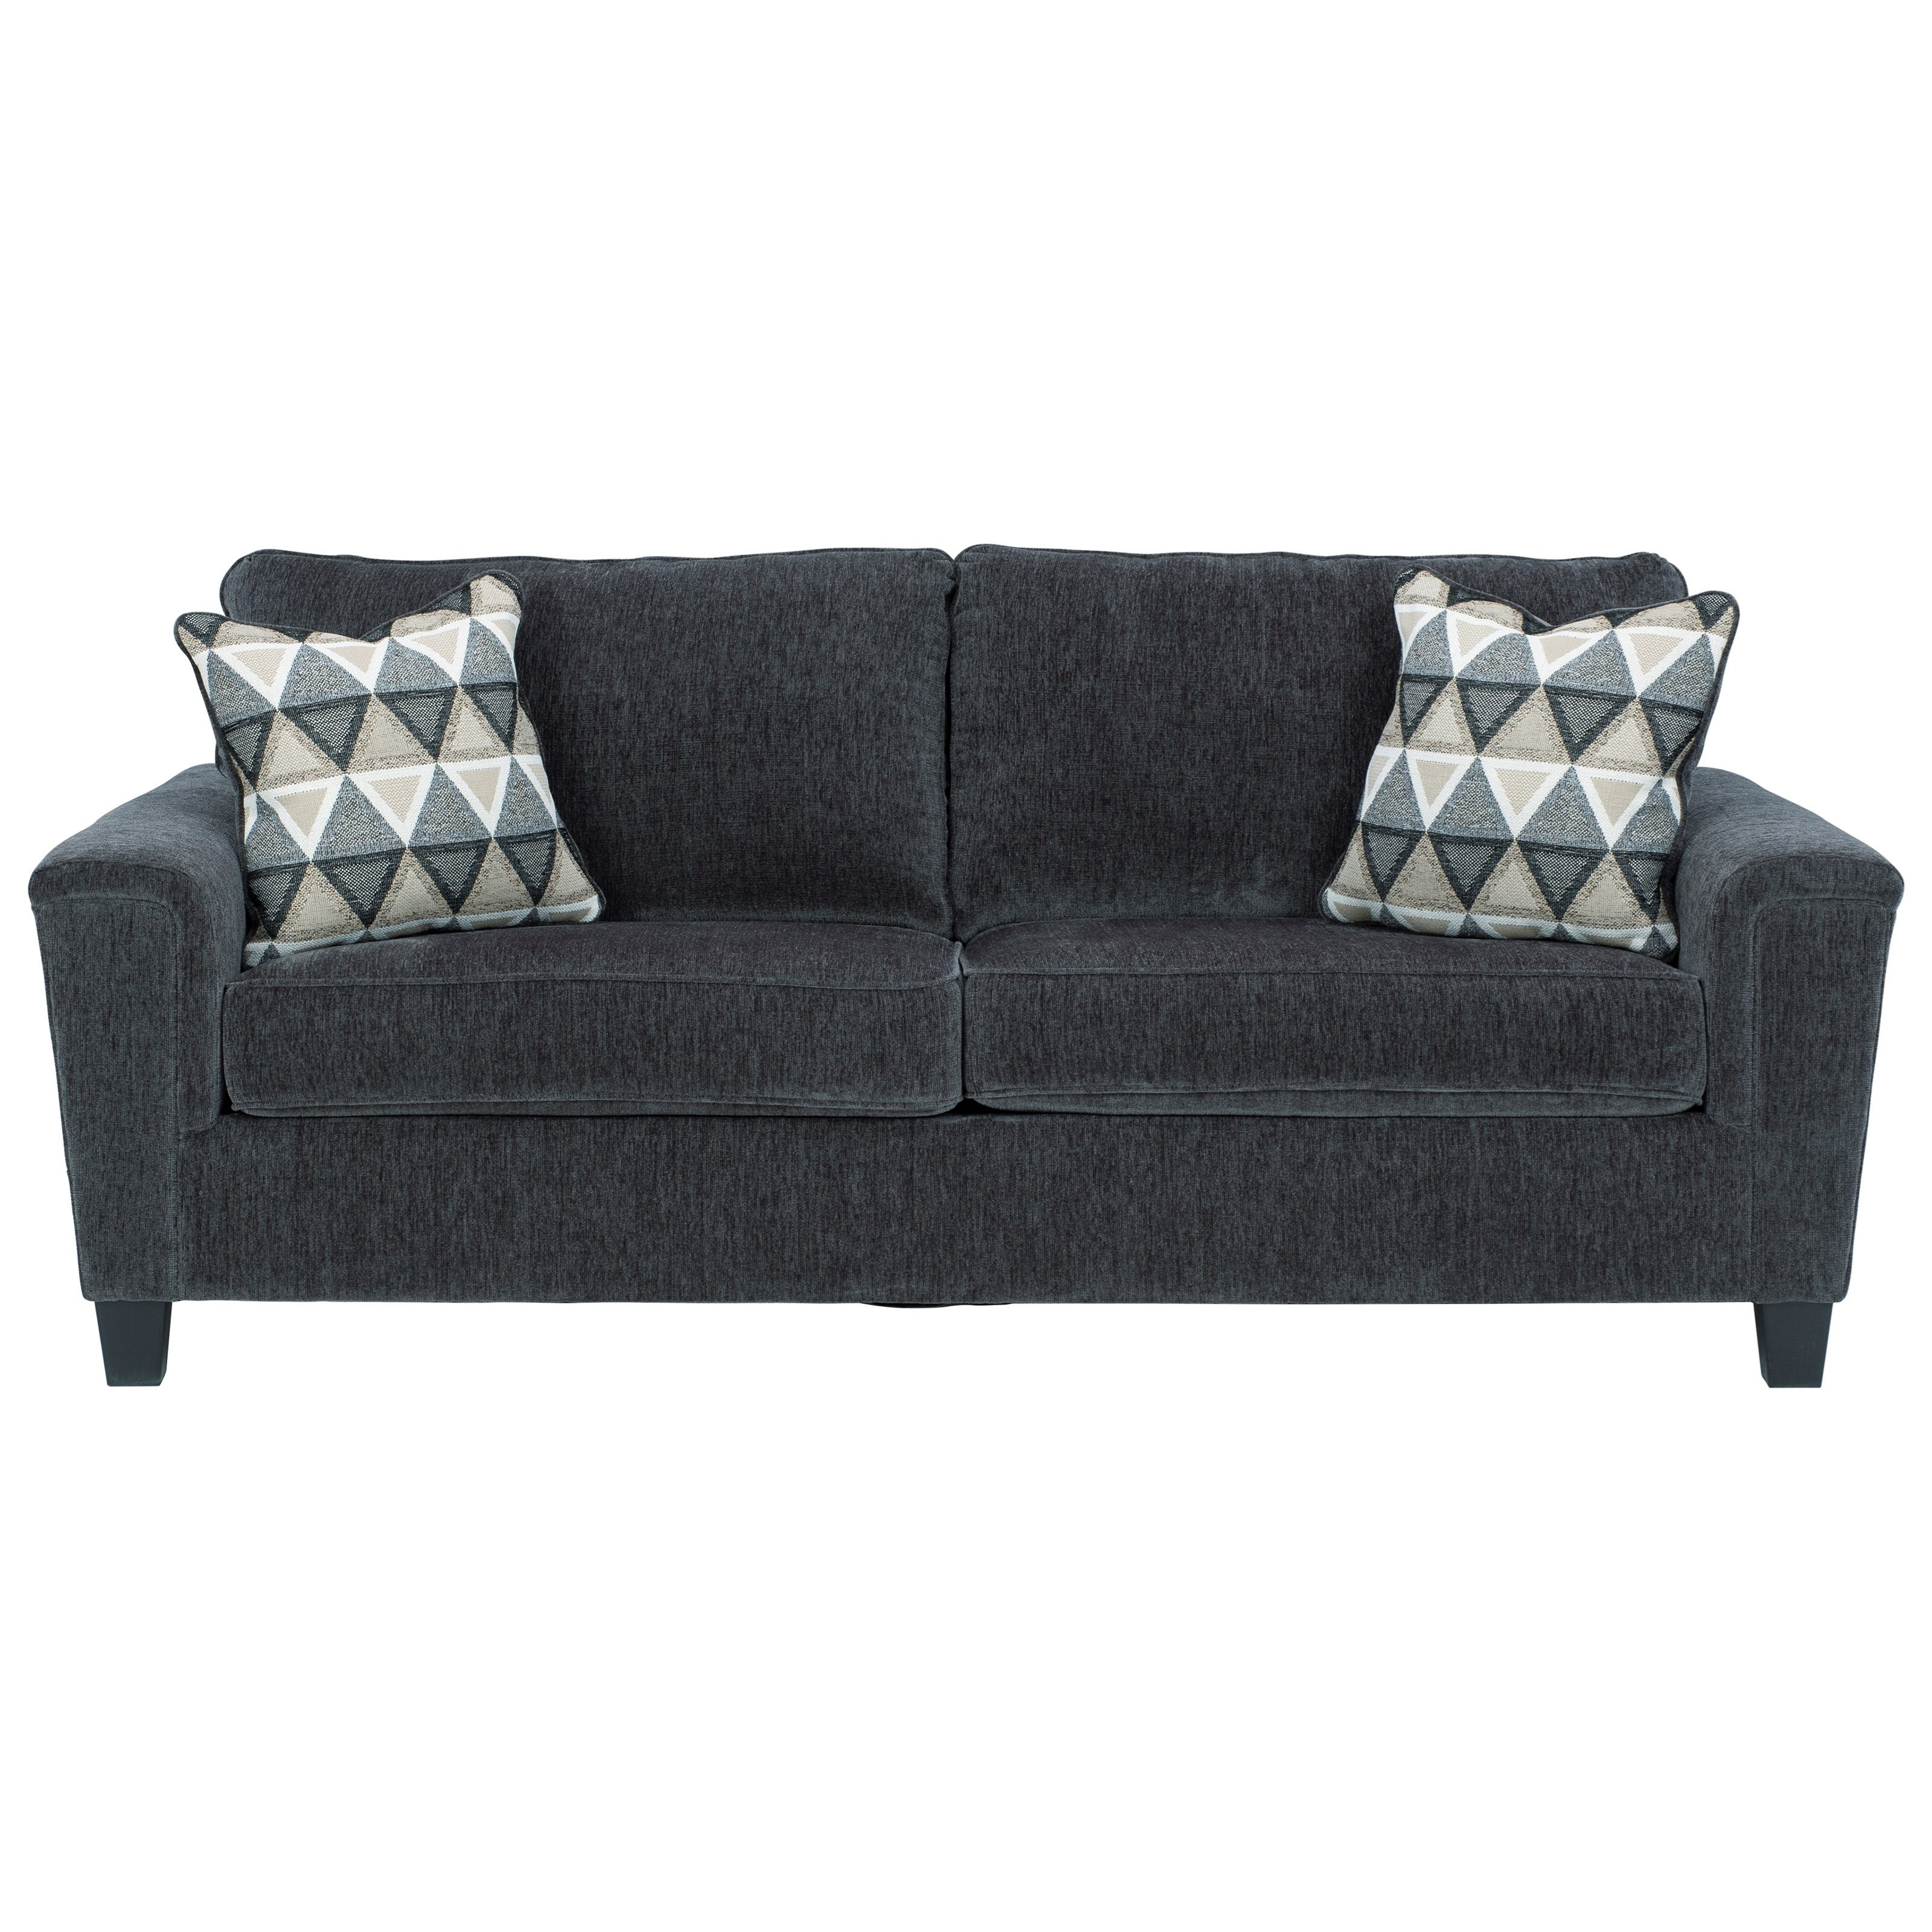 Abinger Queen Sofa Sleeper by Signature Design by Ashley at Reid's Furniture